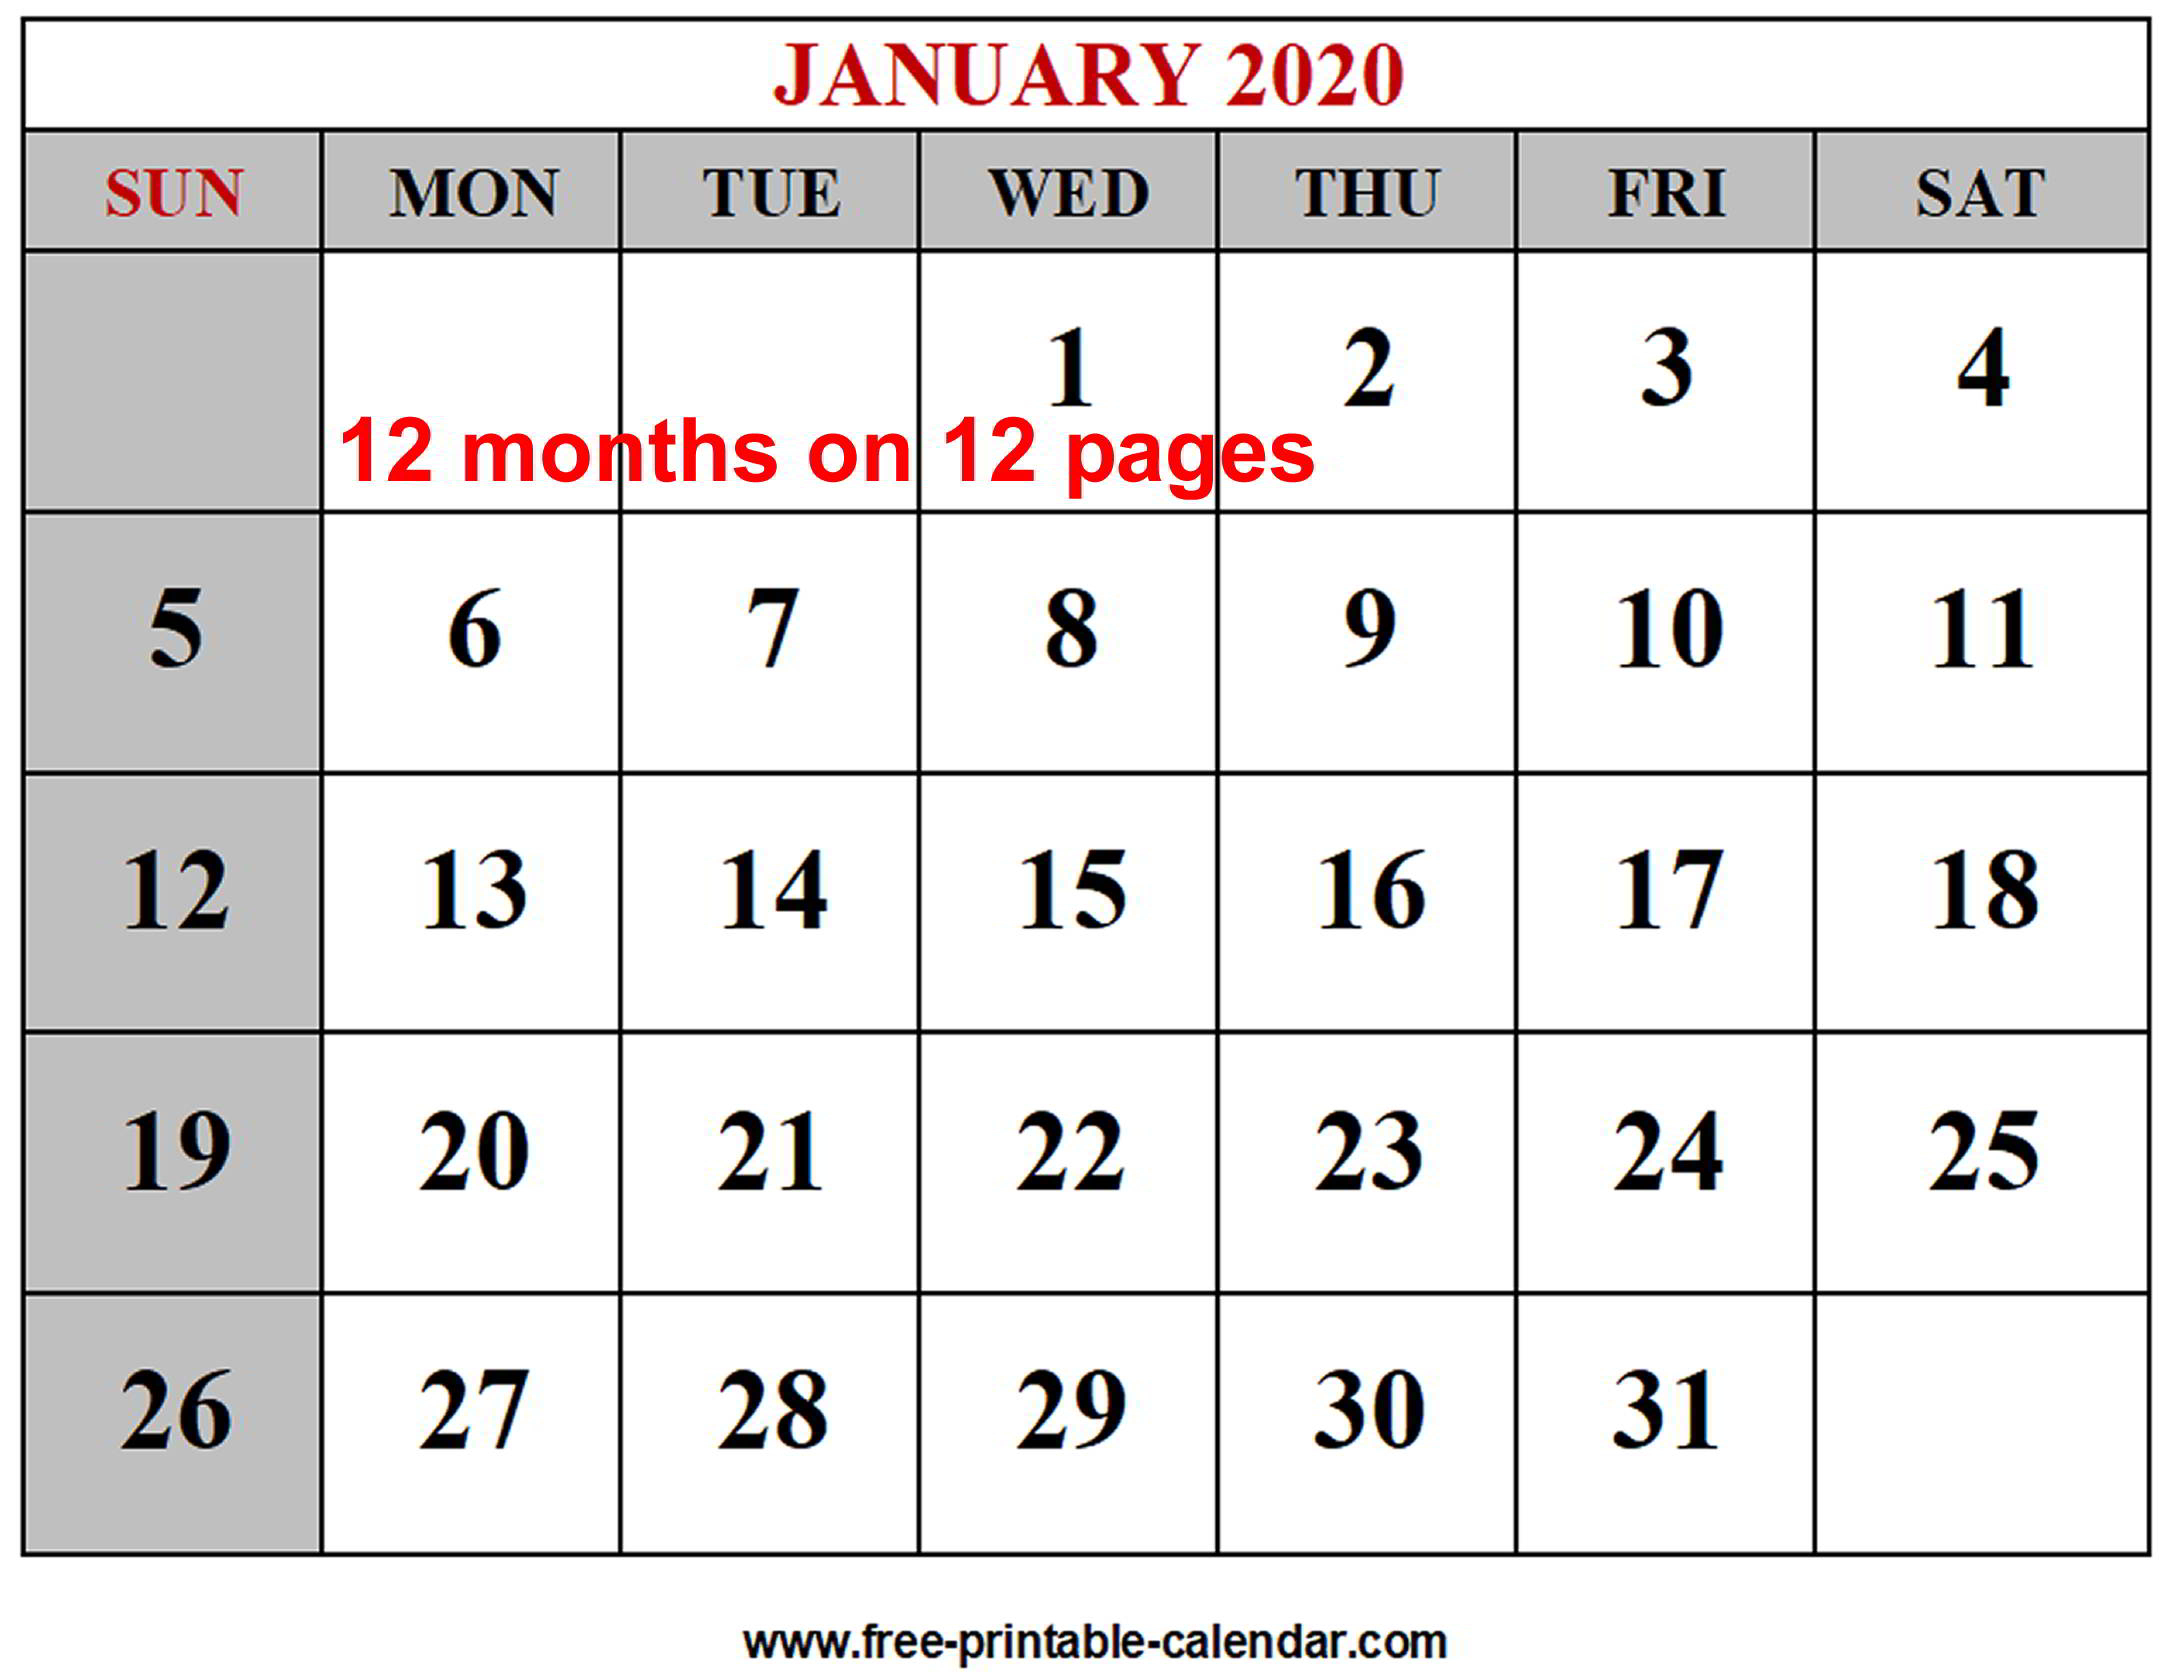 Free Printable Monthly Calendar Templates 2020 - Wpa.wpart.co